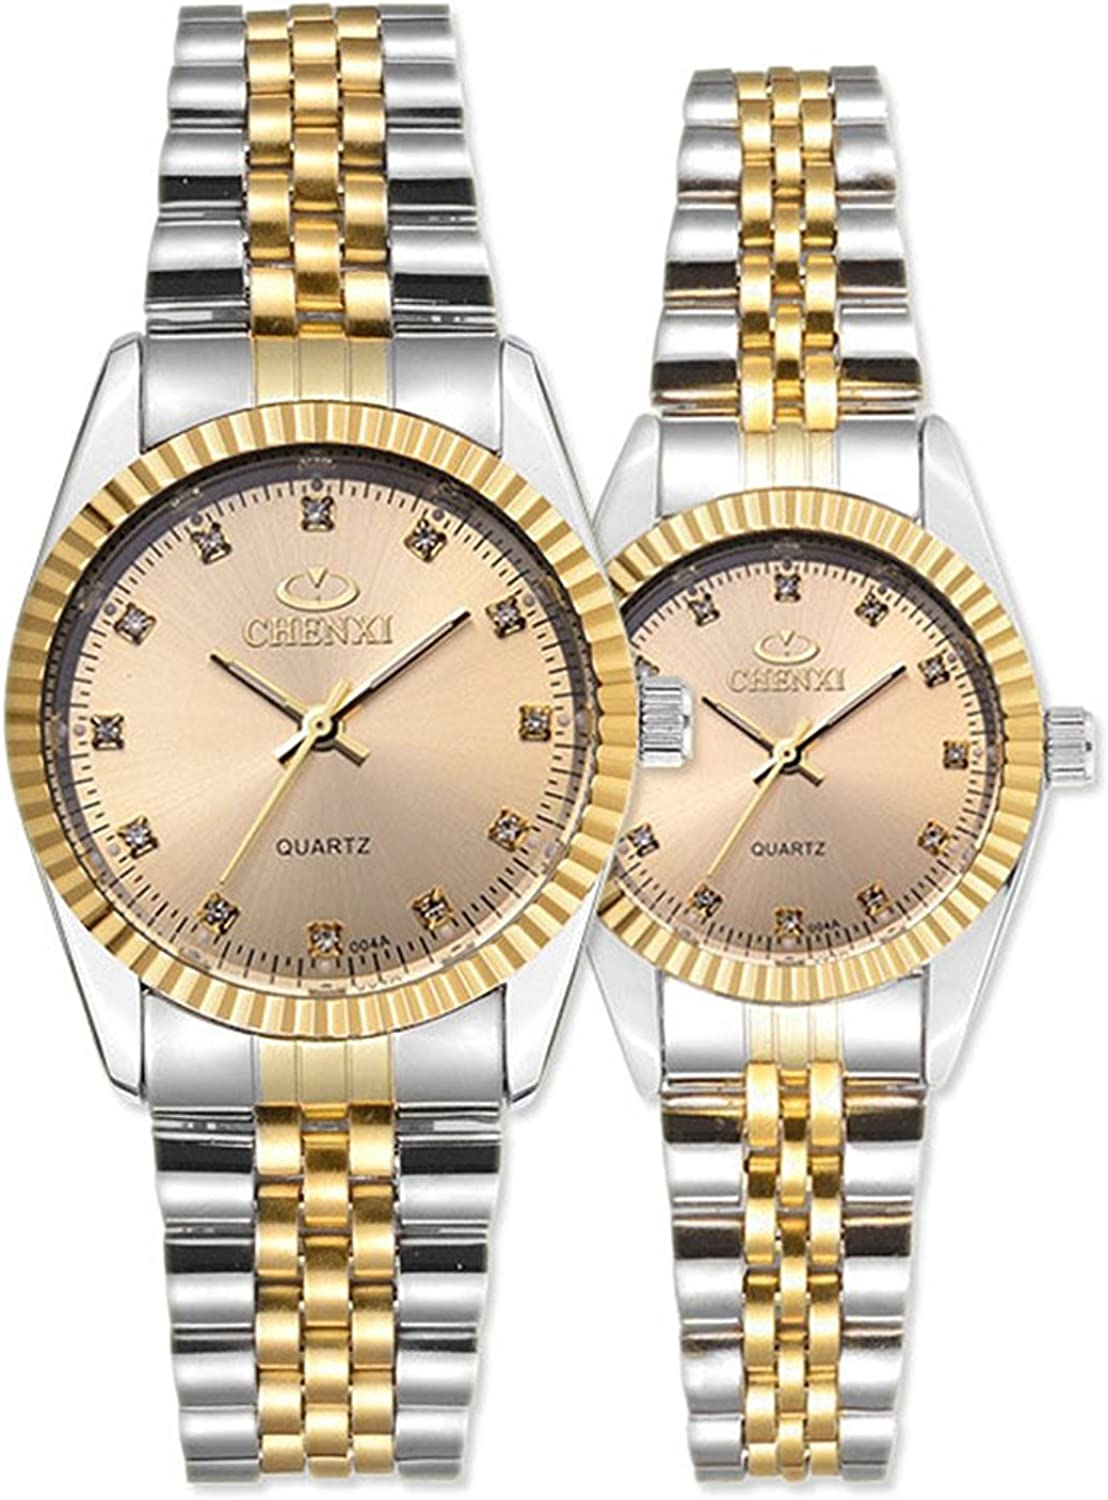 Swiss Brand Two Tone Watch Men Women Gold Silver Stainless Steel Waterproof Couple Watches Gift of 2